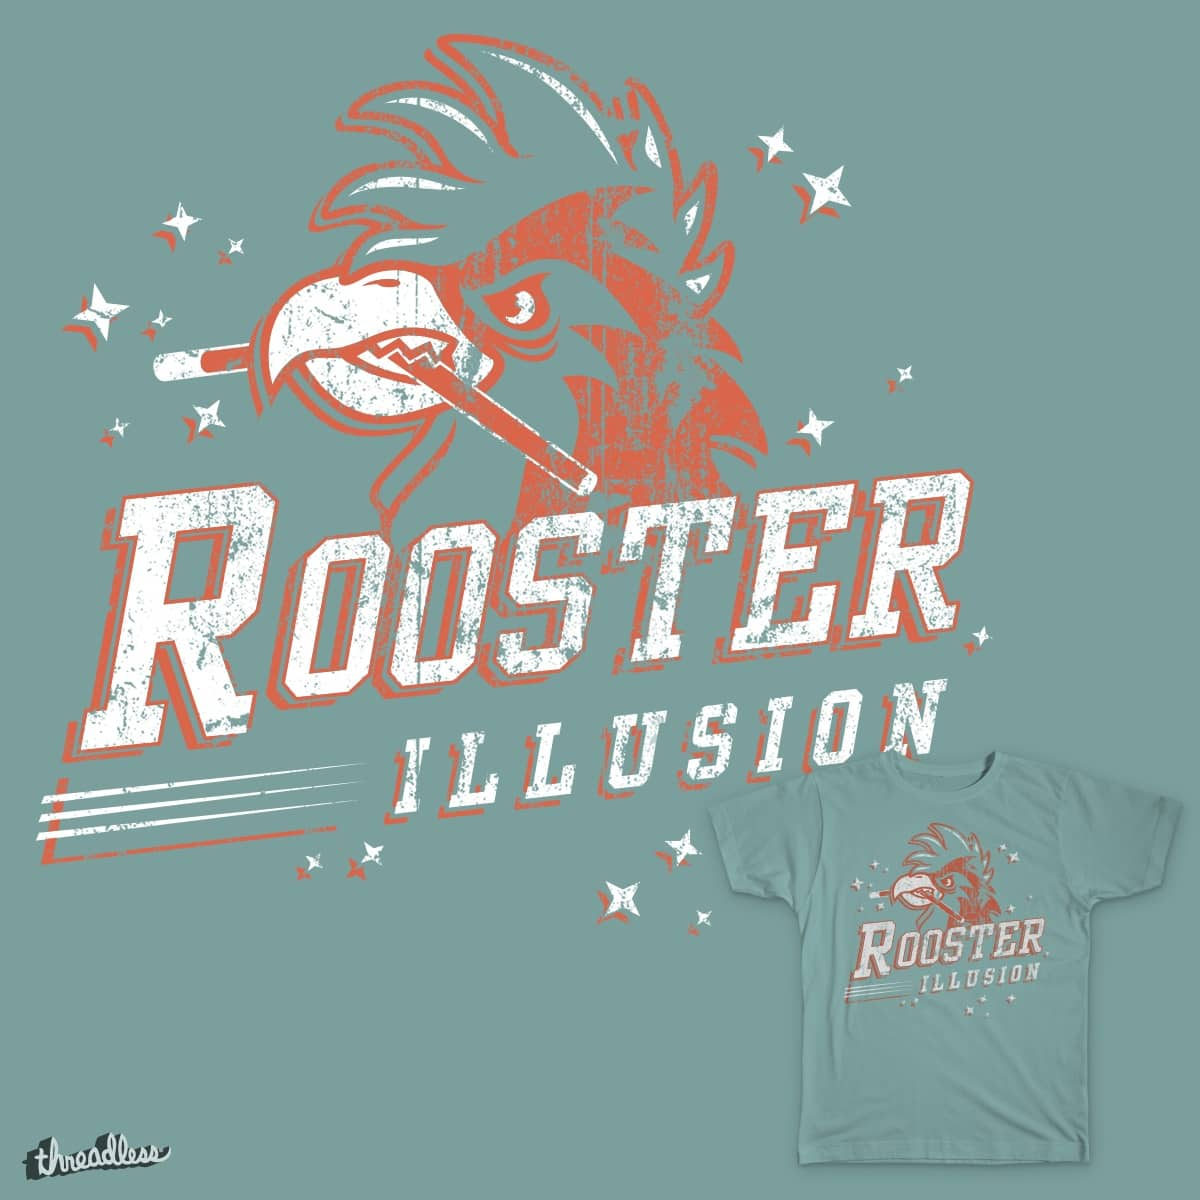 Rooster Illusion by srhartman on Threadless